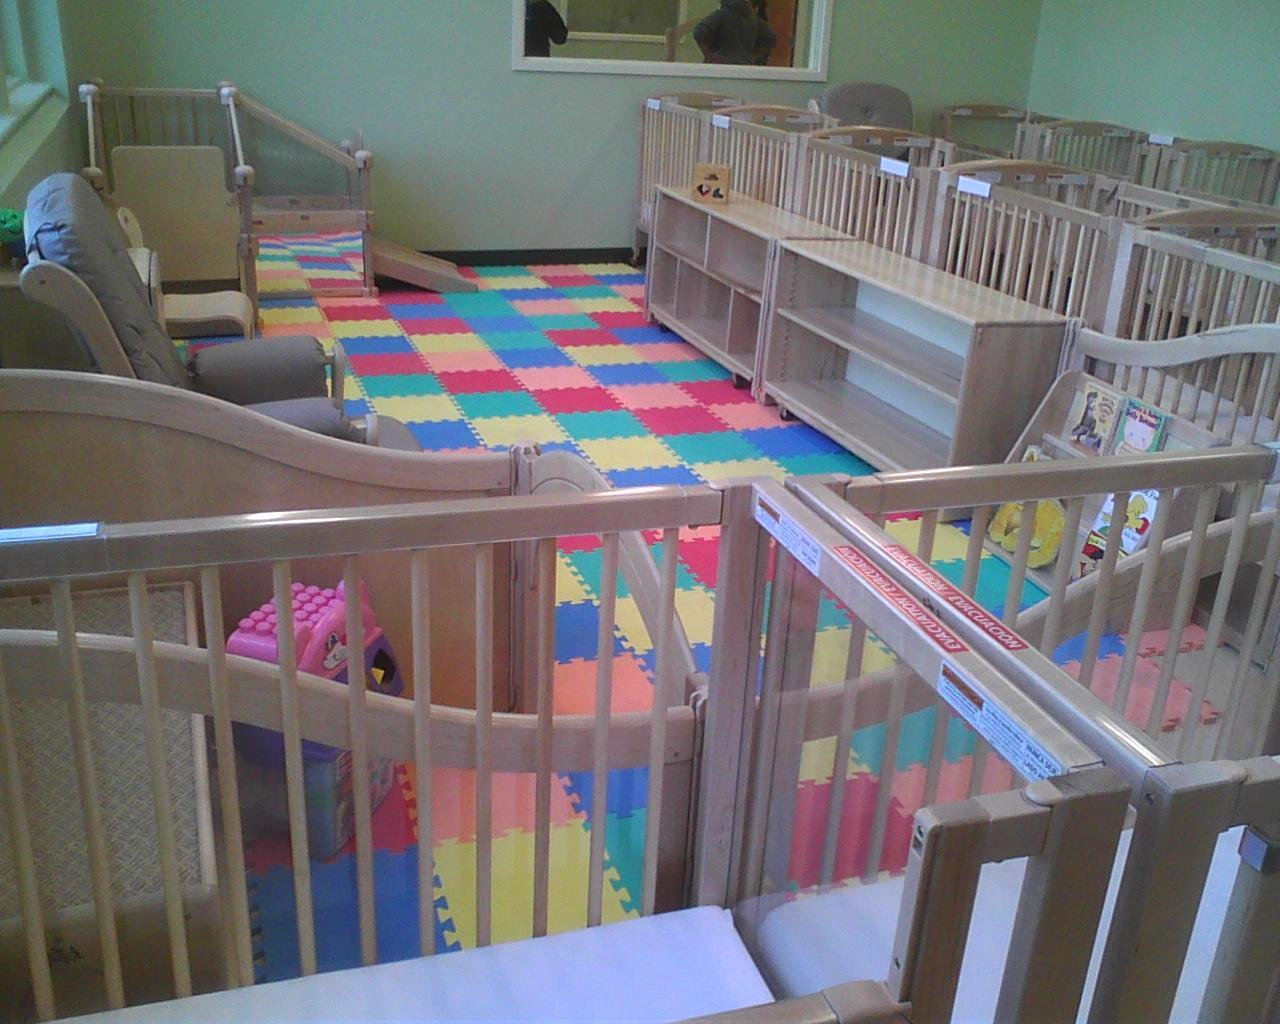 The main room of the daycare center for student parents at the benjamin franklin high school can accommodate 24 babies and toddlers